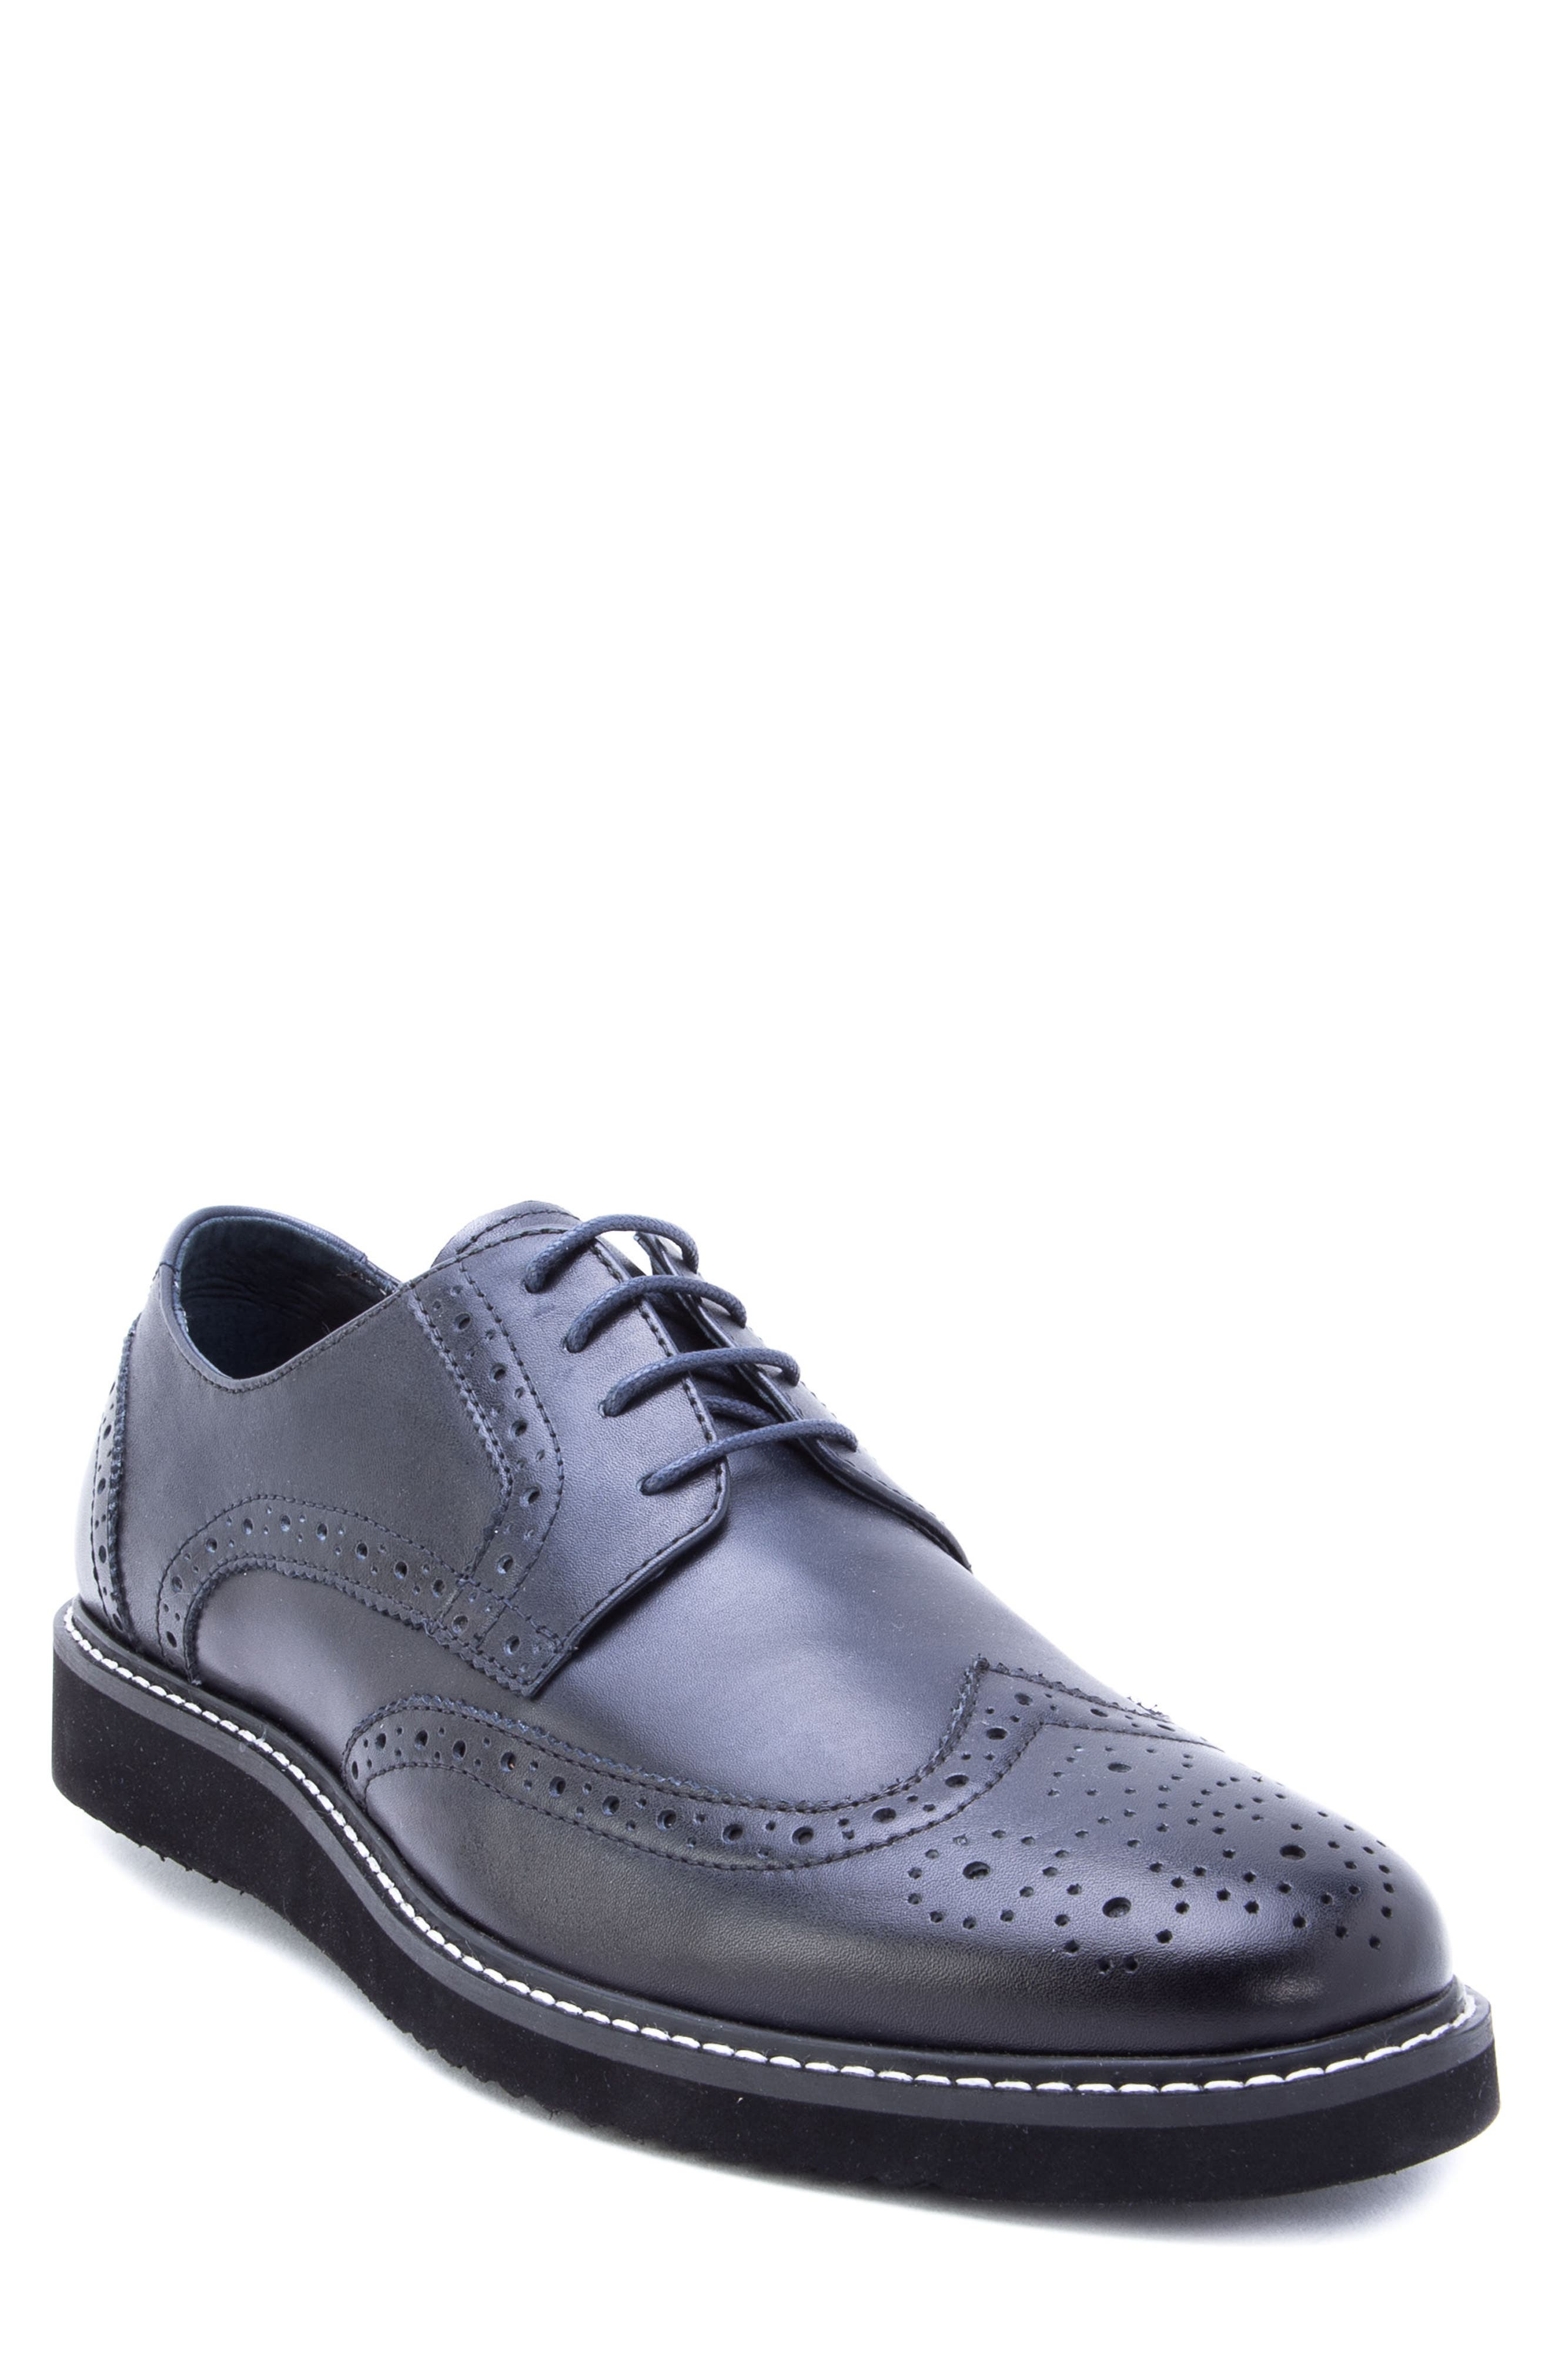 Siena Wingtip Derby,                             Main thumbnail 1, color,                             NAVY LEATHER